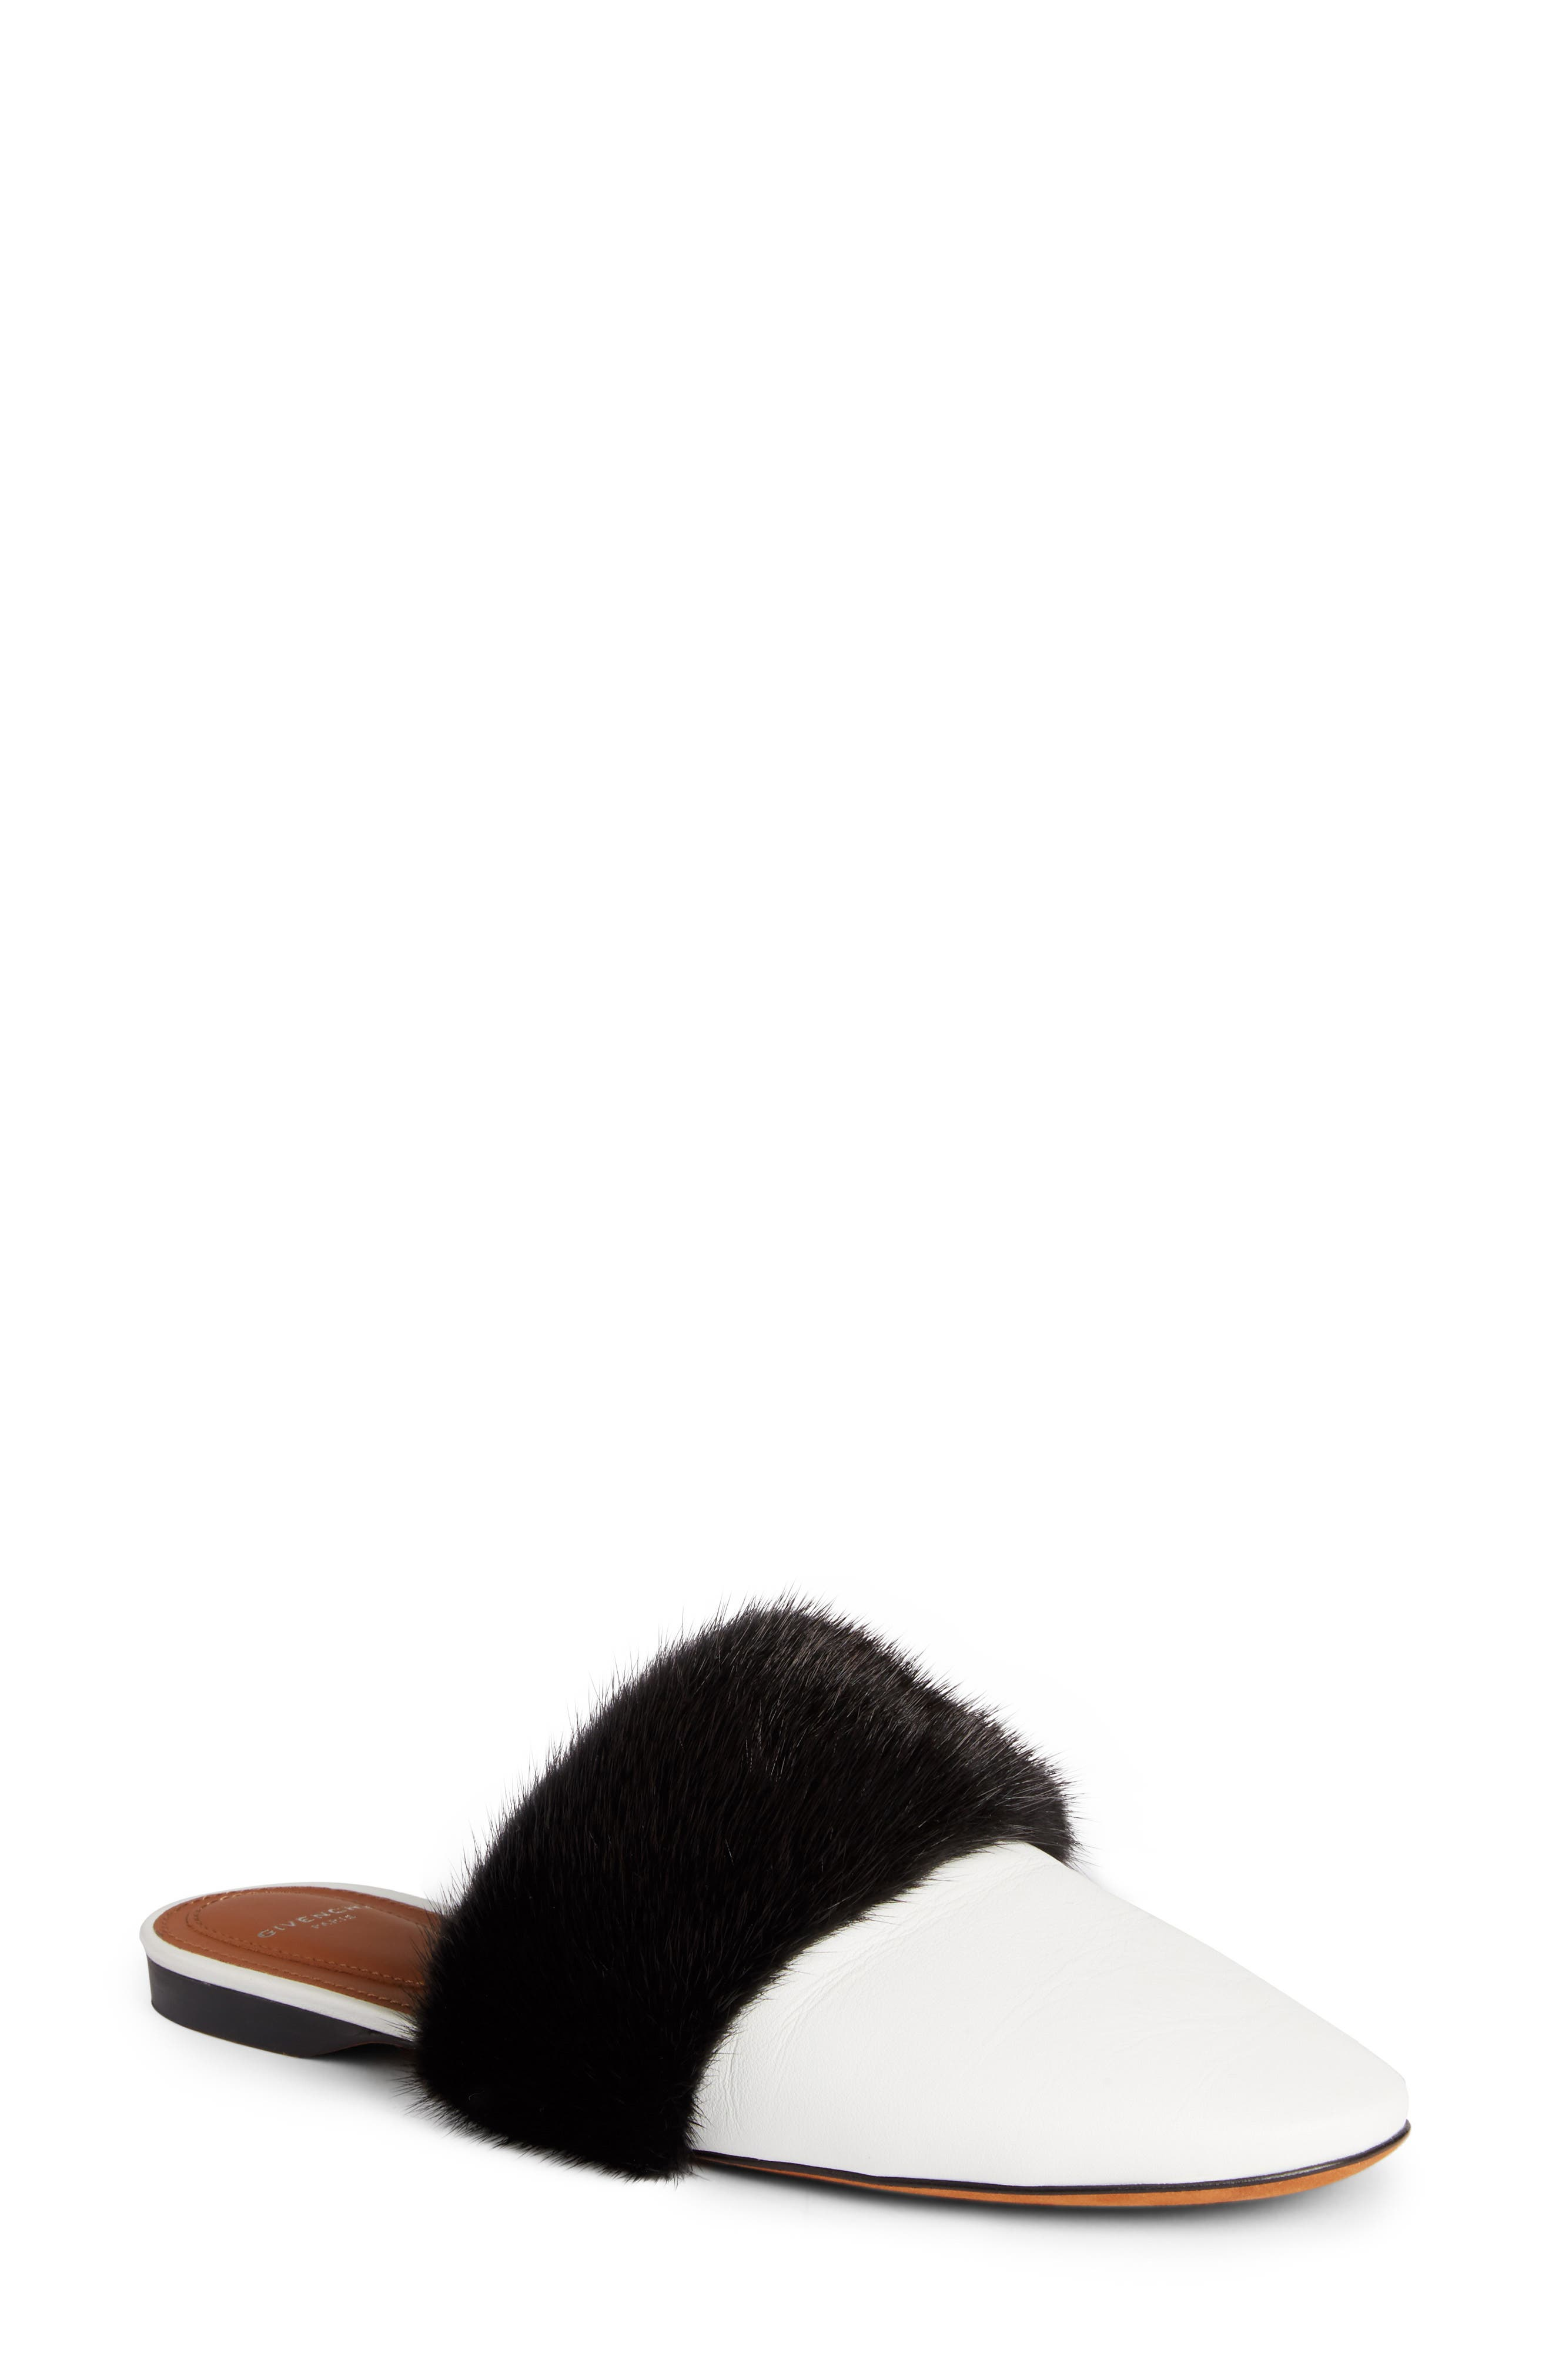 Alternate Image 1 Selected - Givenchy Genuine Mink Fur Mule (Women)